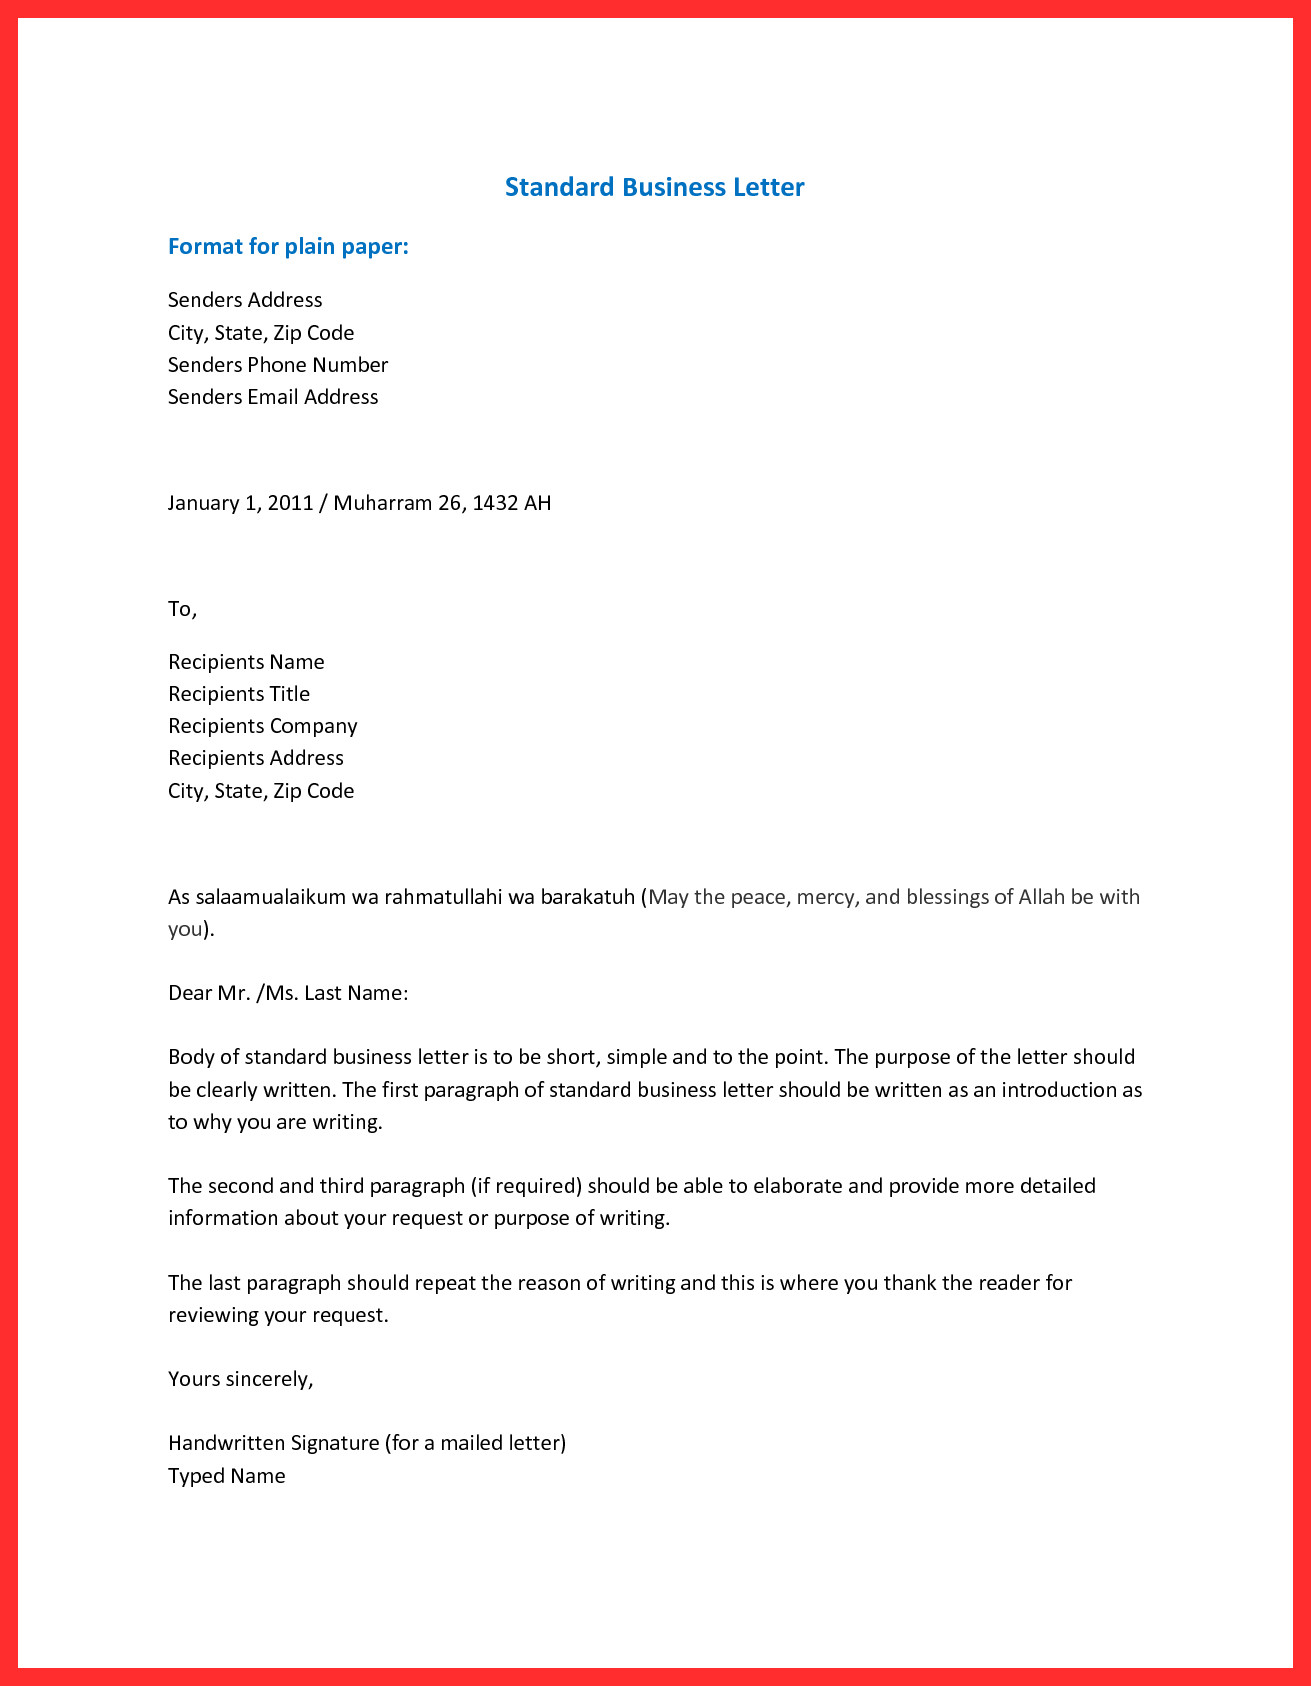 Business letter set up how end a the best sample for writing